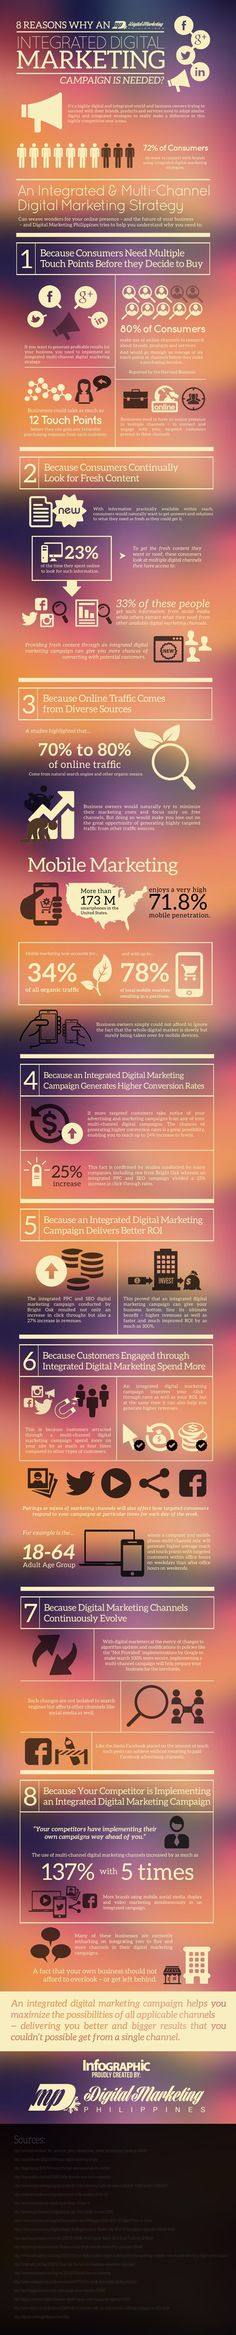 8 Reasons Why An Integrated Digital Marketing Campaign Is Needed? (Infographic)…